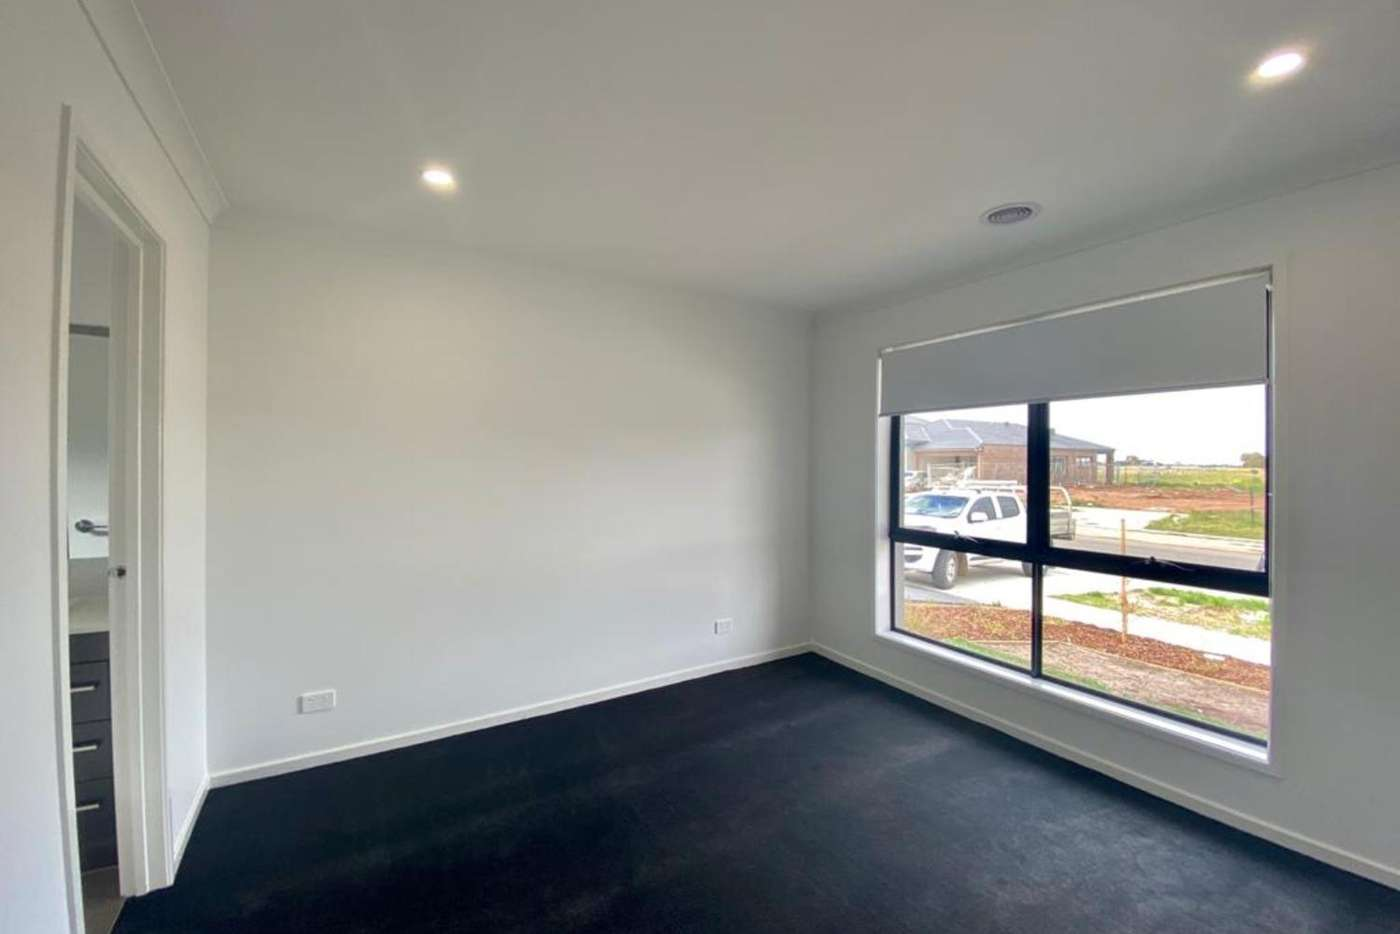 Sixth view of Homely house listing, 13 Boxer Drive, Wyndham Vale VIC 3024